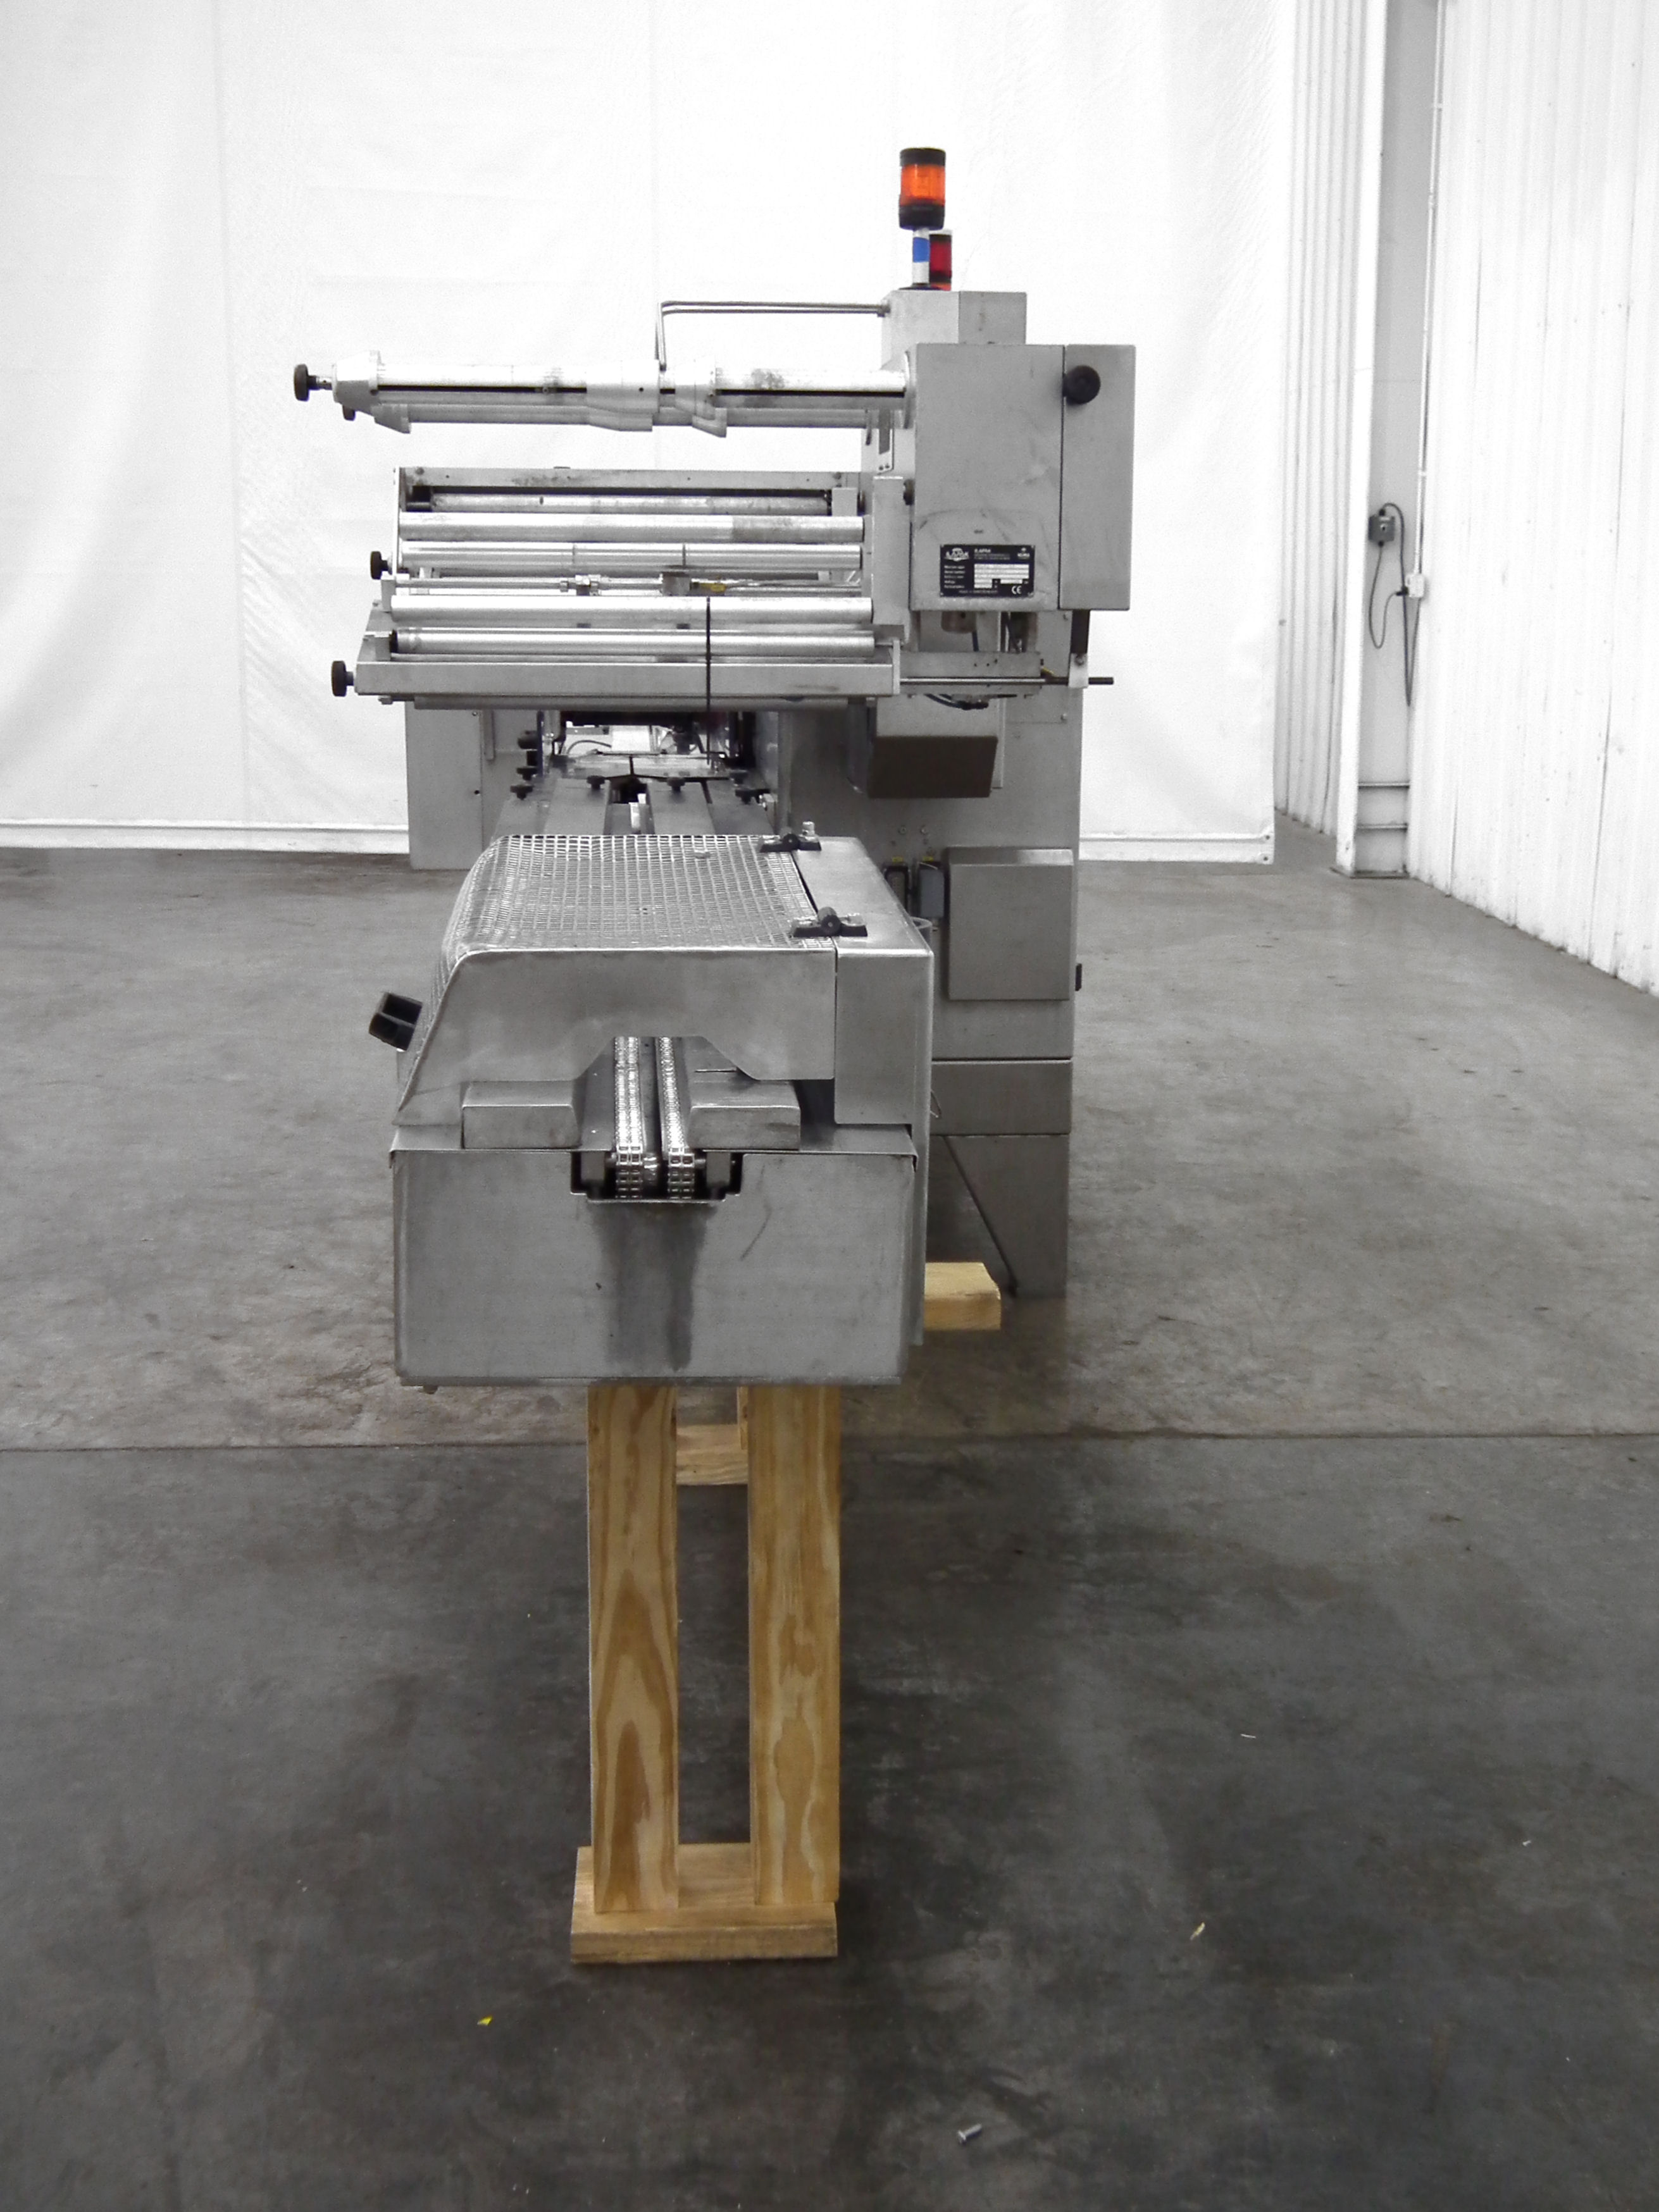 Ilapak Delta 3000 DC Wide Frame SS Wrapper B4828 - Image 3 of 11